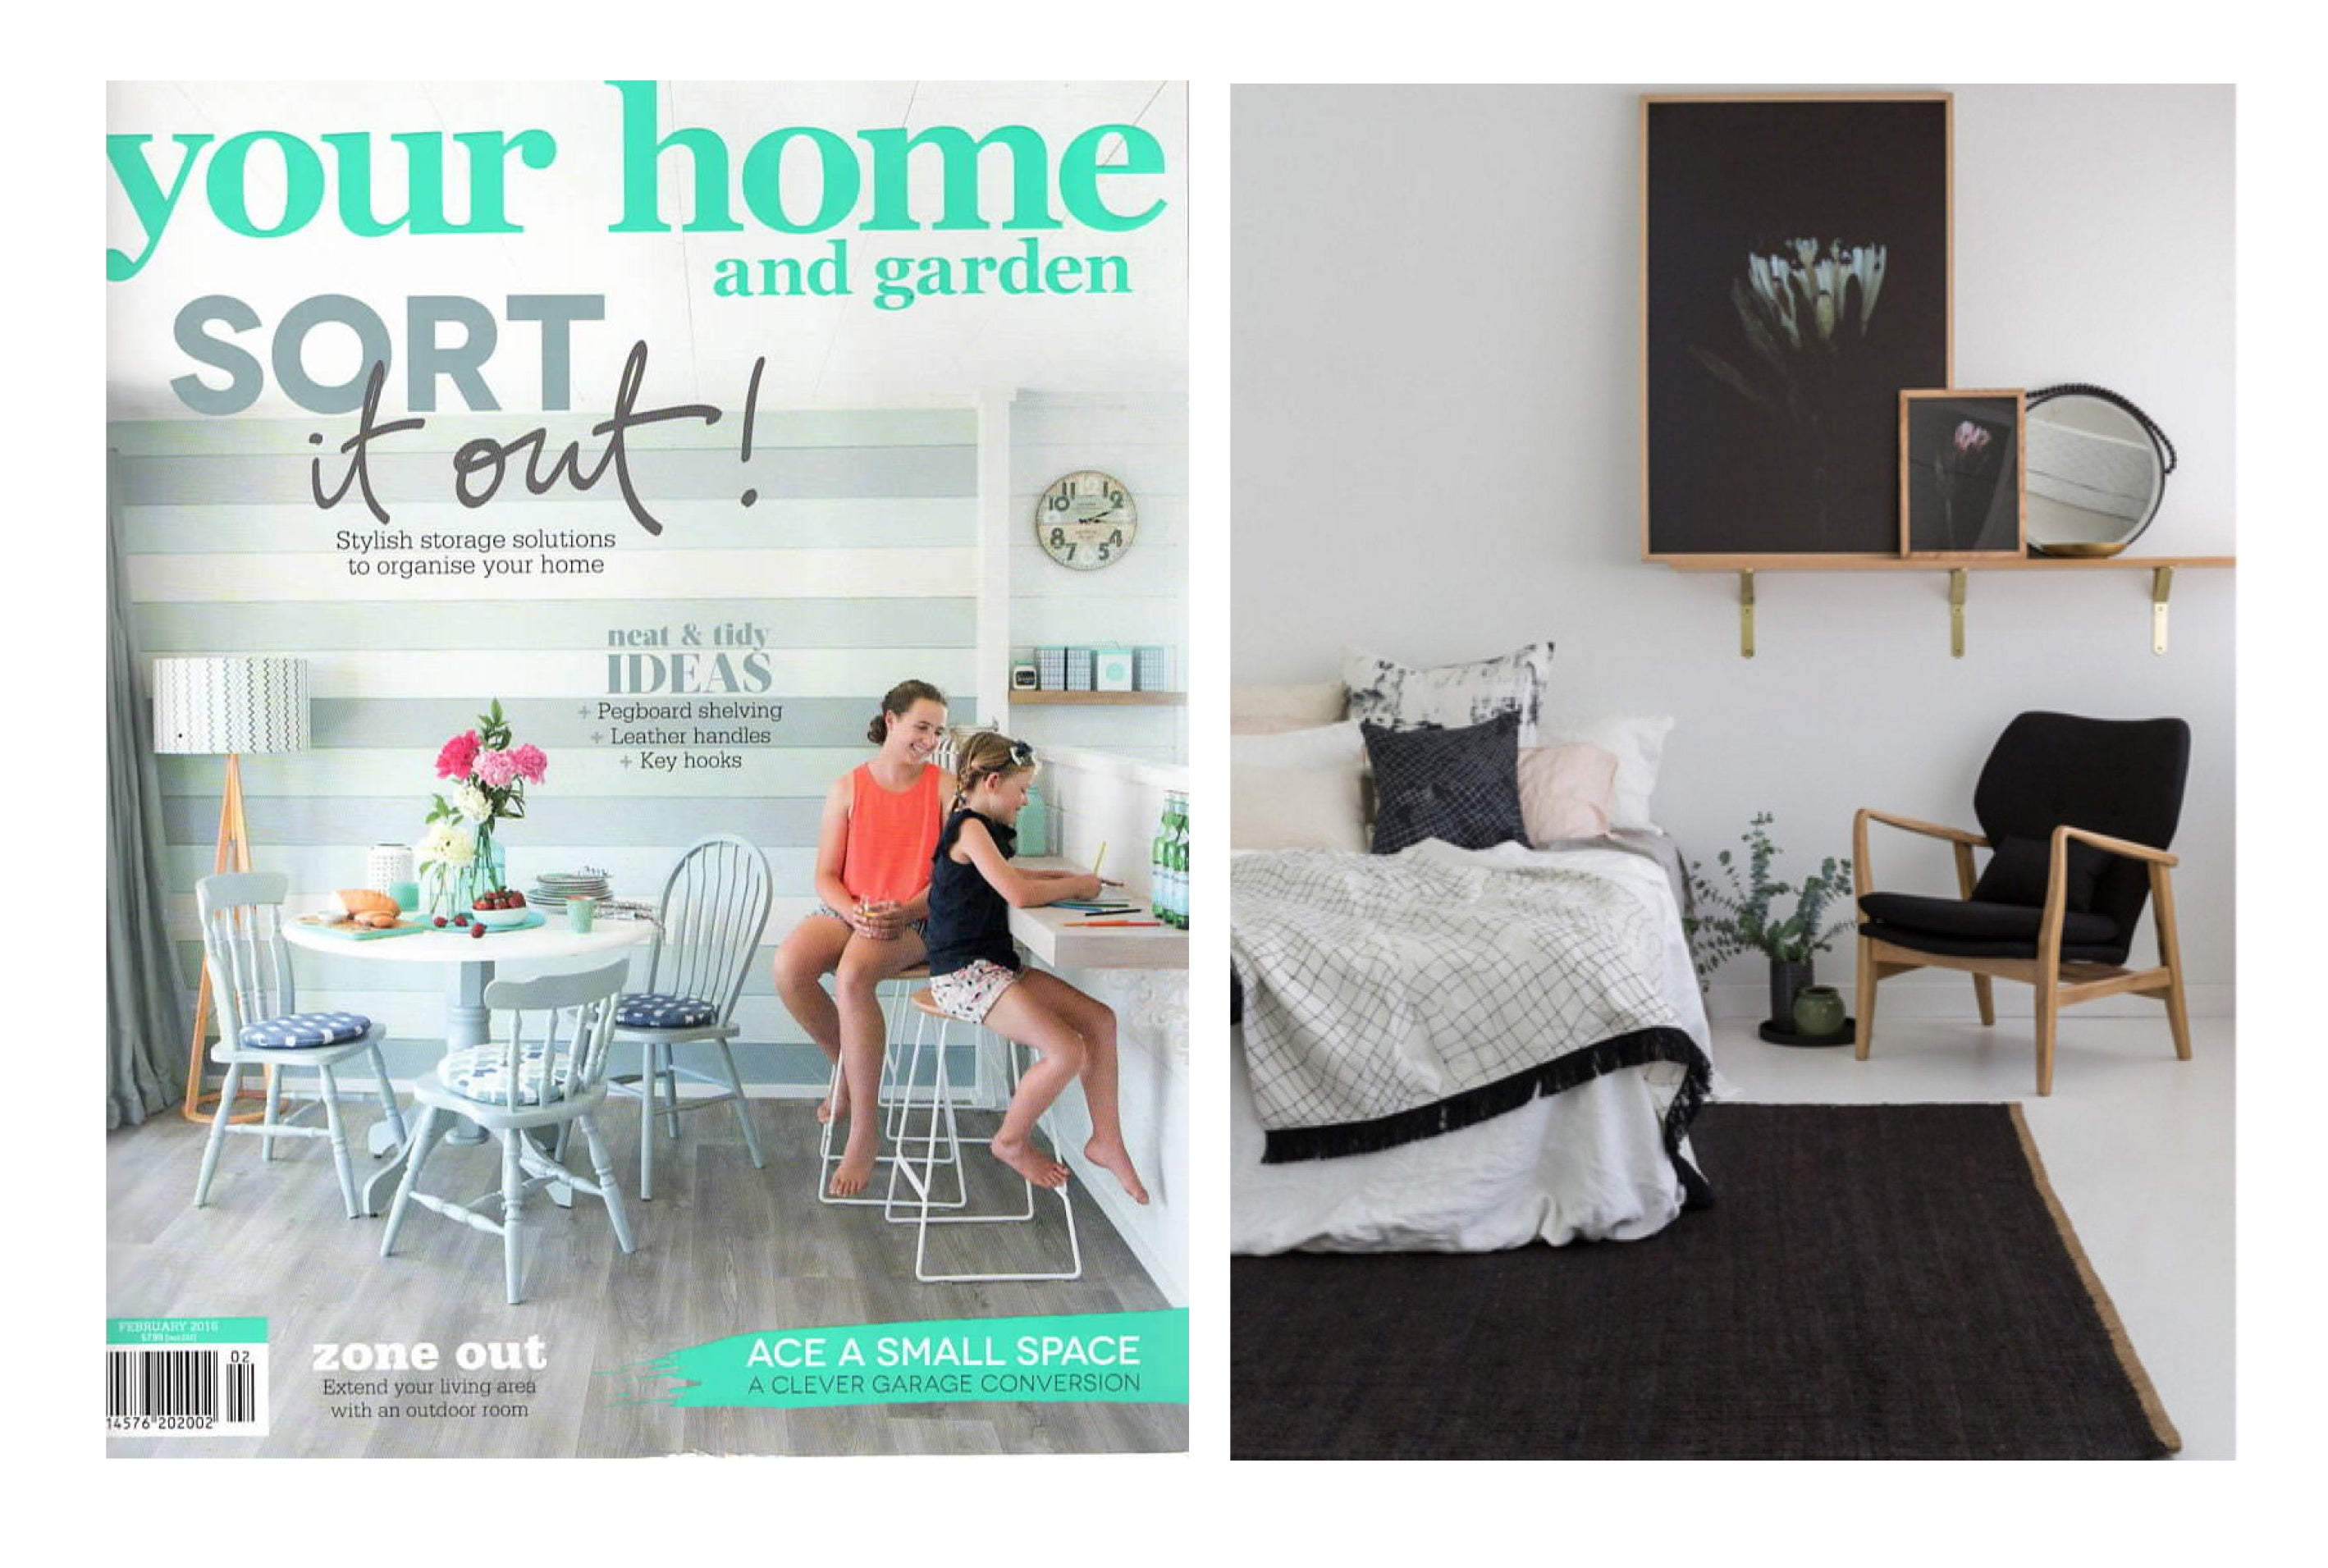 FRESH START BEDROOM - YOUR HOME & GARDEN MAGAZINE - FEBRUARY 2016